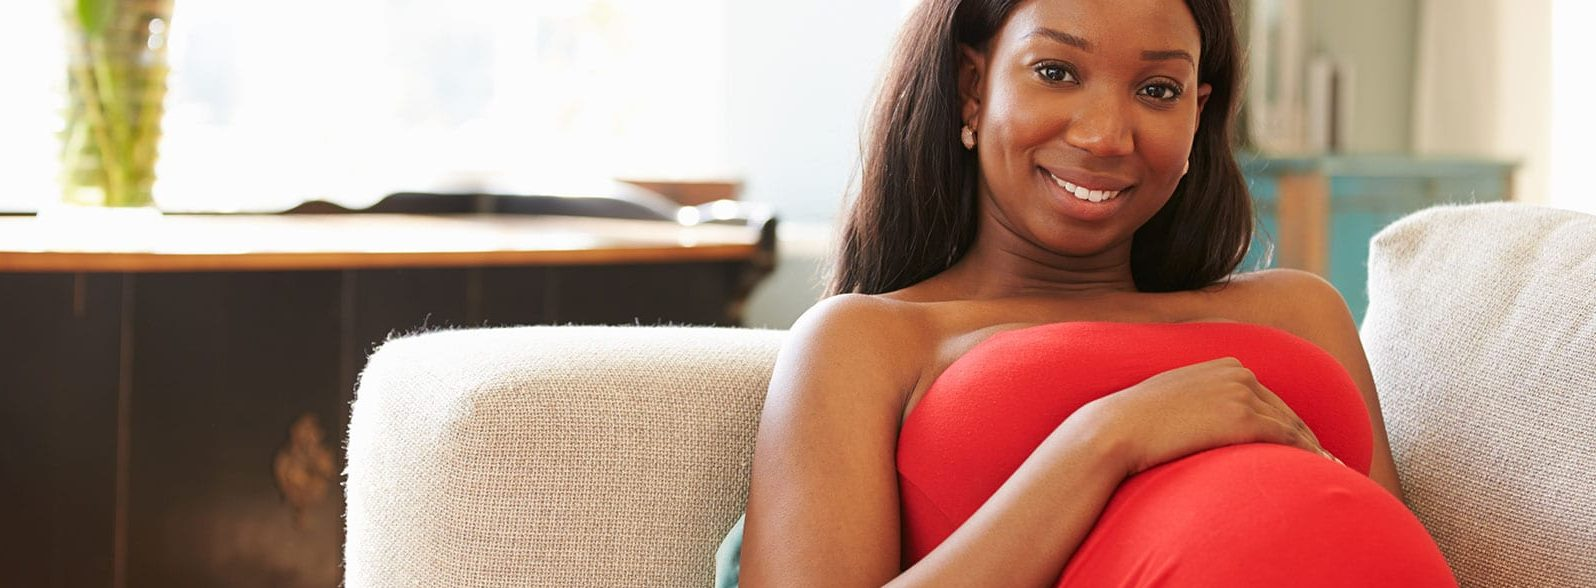 Nine Foods You Should Avoid While Pregnant